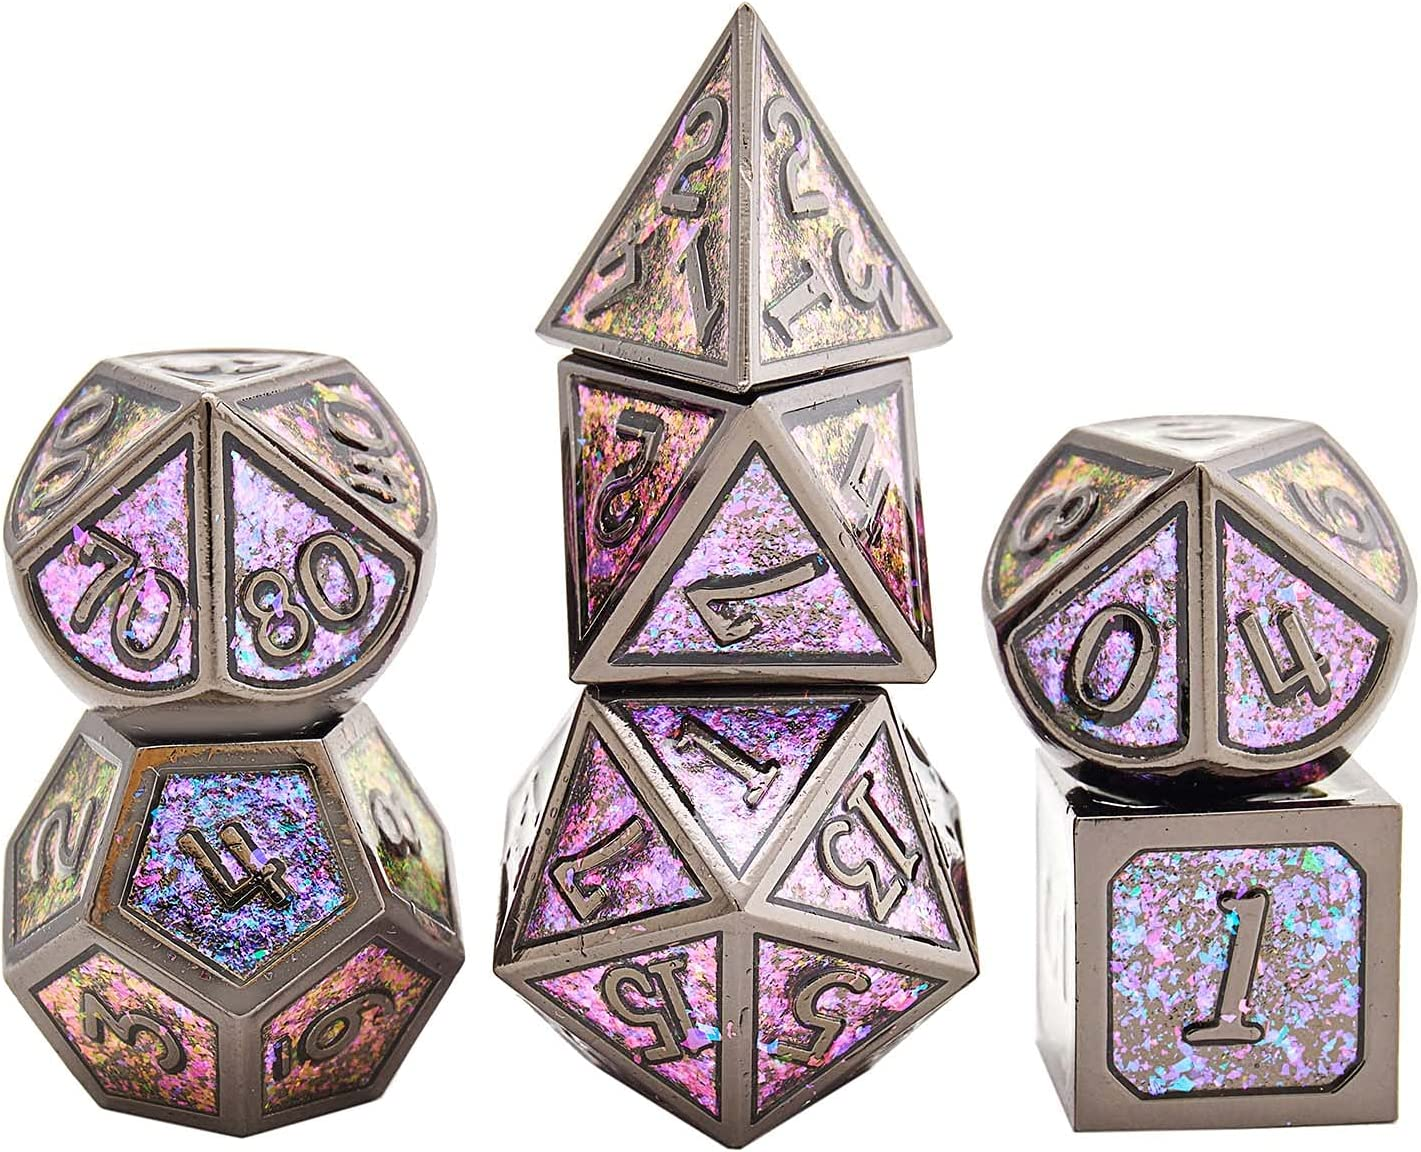 LANSAI Large special price DND Metal Max 86% OFF dice Set for Dunge RPG polyhedral